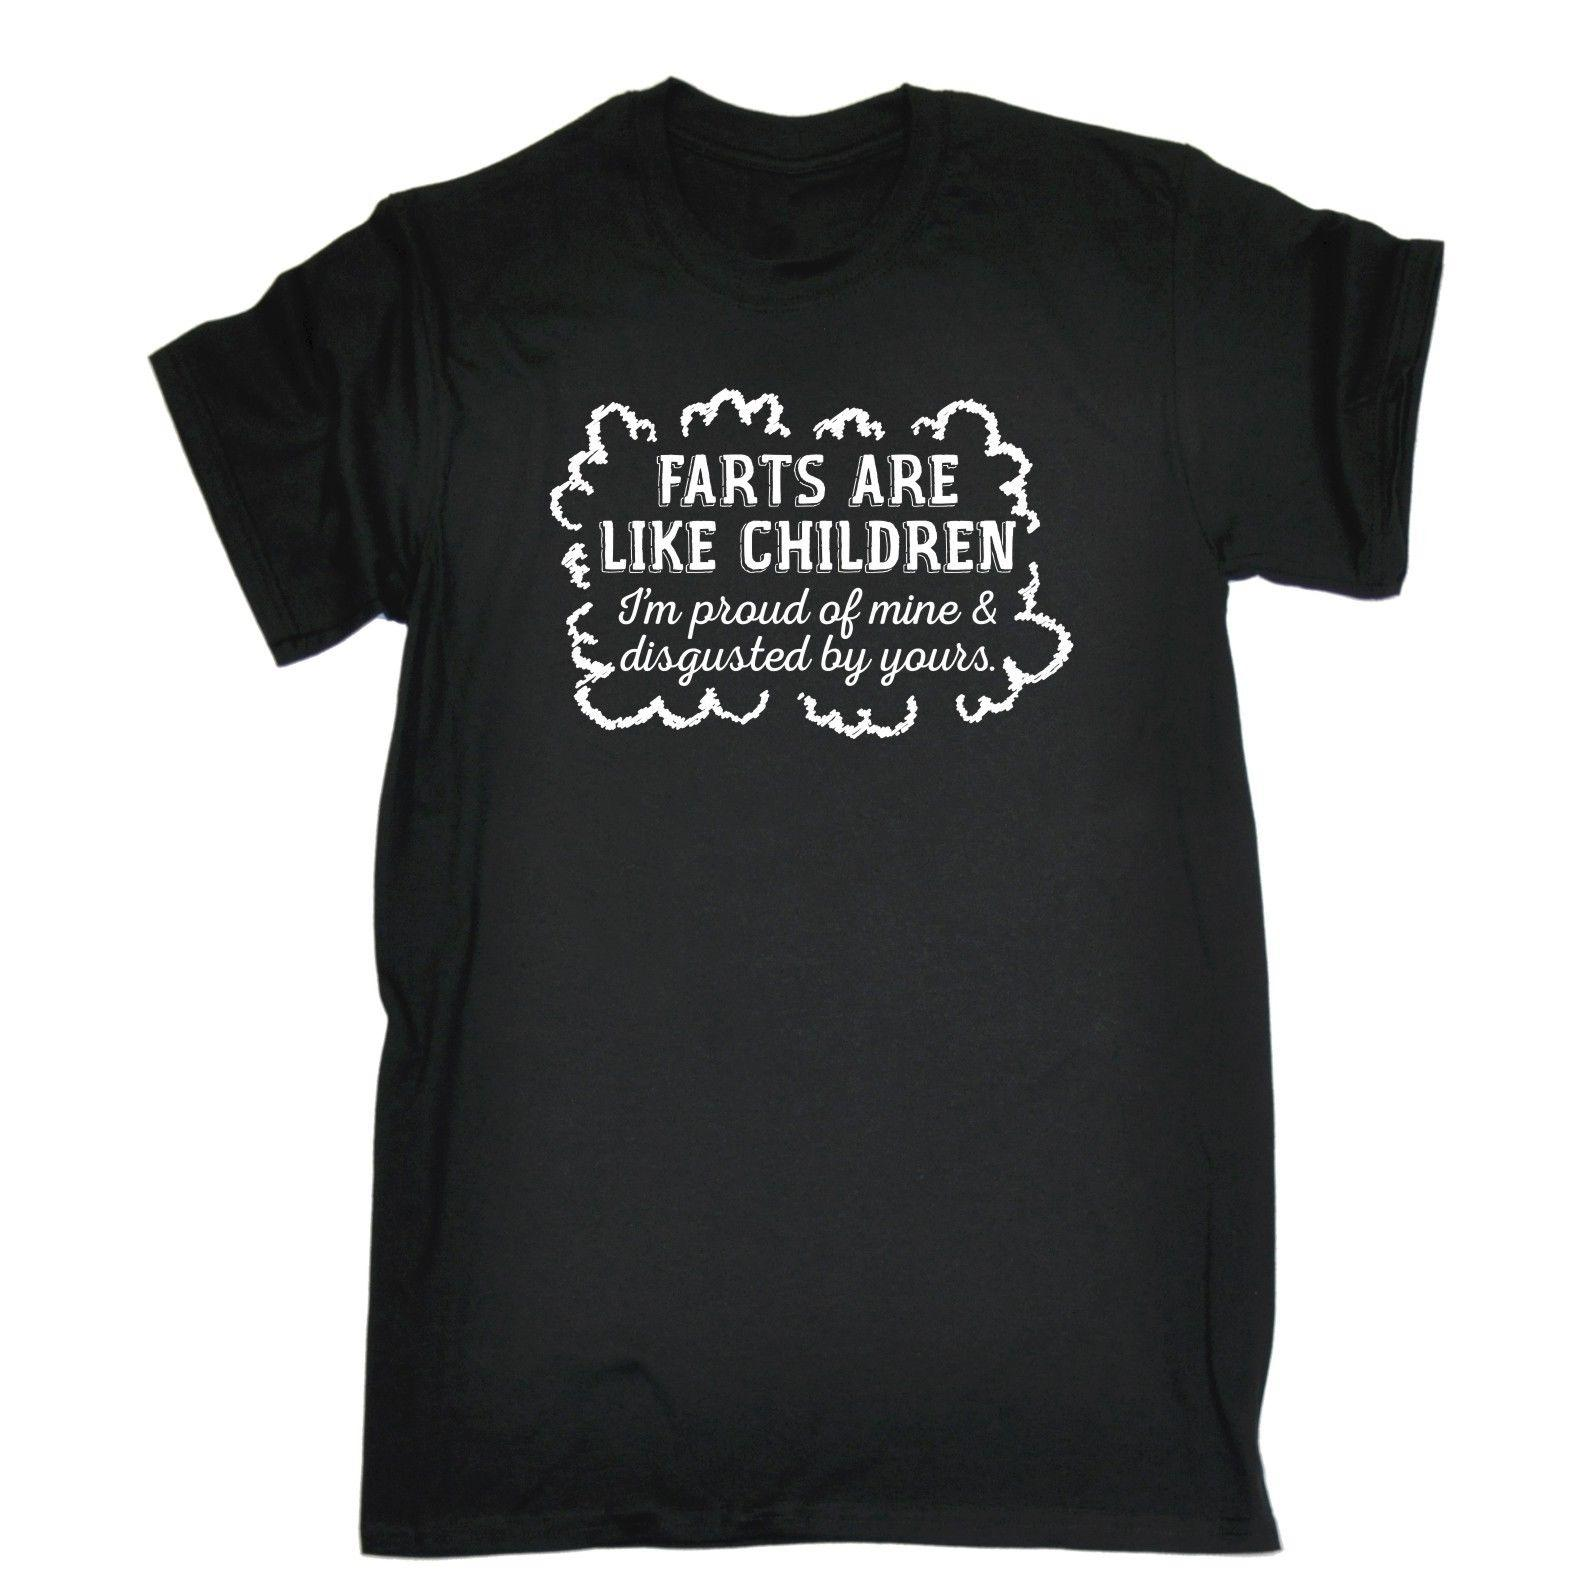 Mens Farts Are Like Children Funny Joke Parent Mum Mom Dad T SHIRT Birthday Tees Shirts Cheap Design And Buy From Beidhgate09 1101